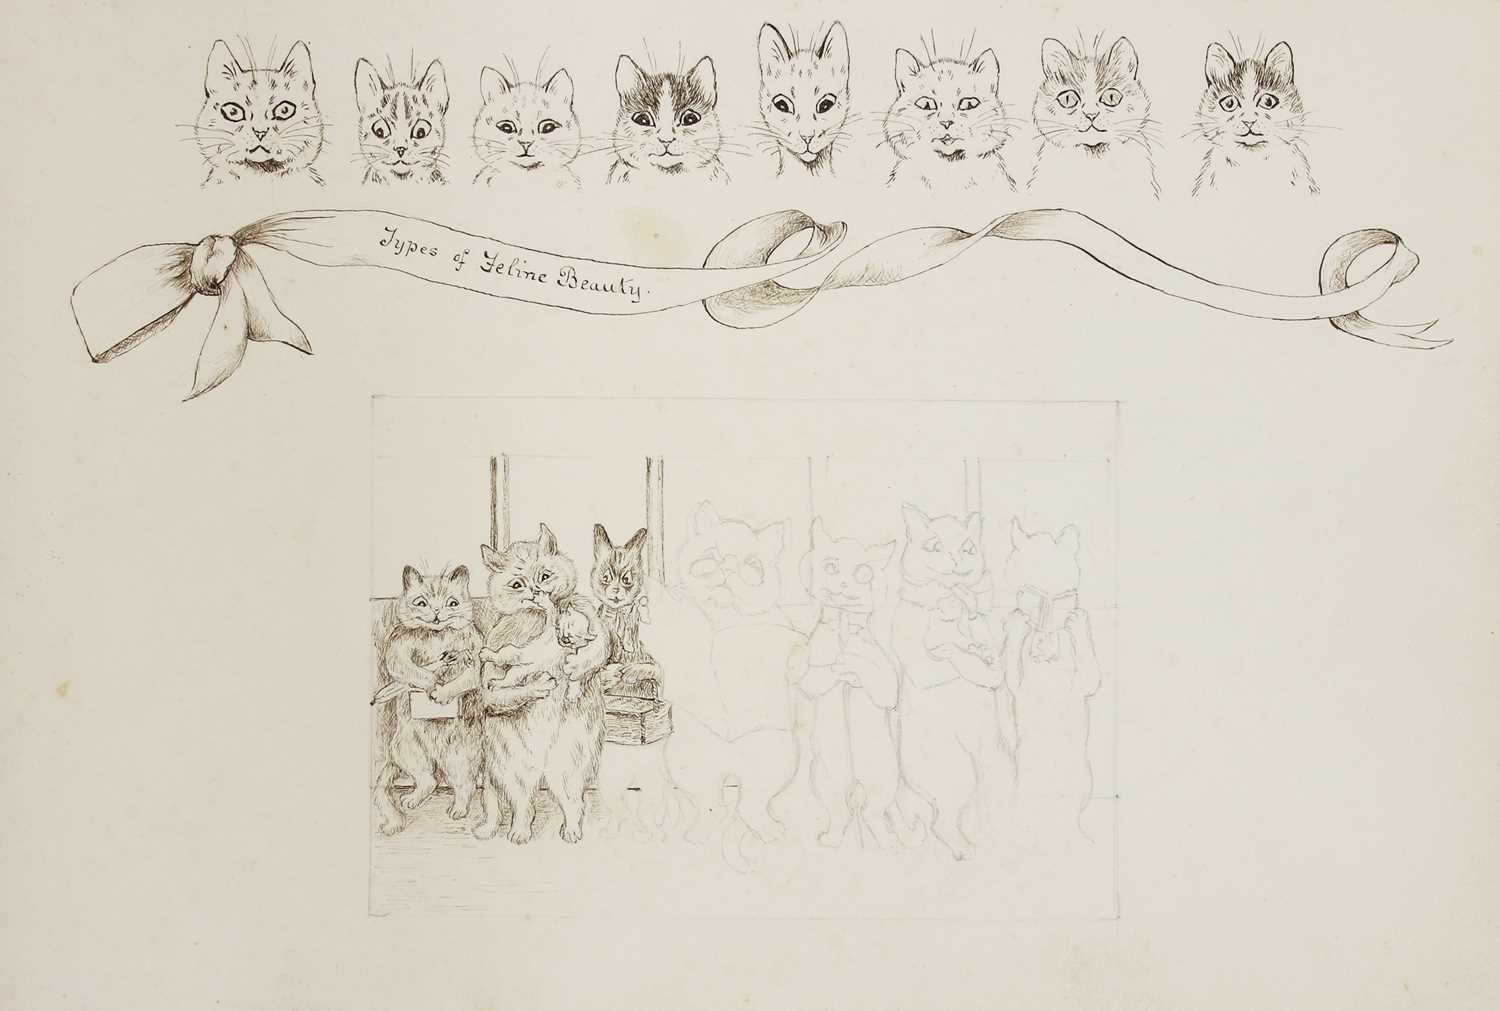 Attributed to Louis Wain (1860-1939)